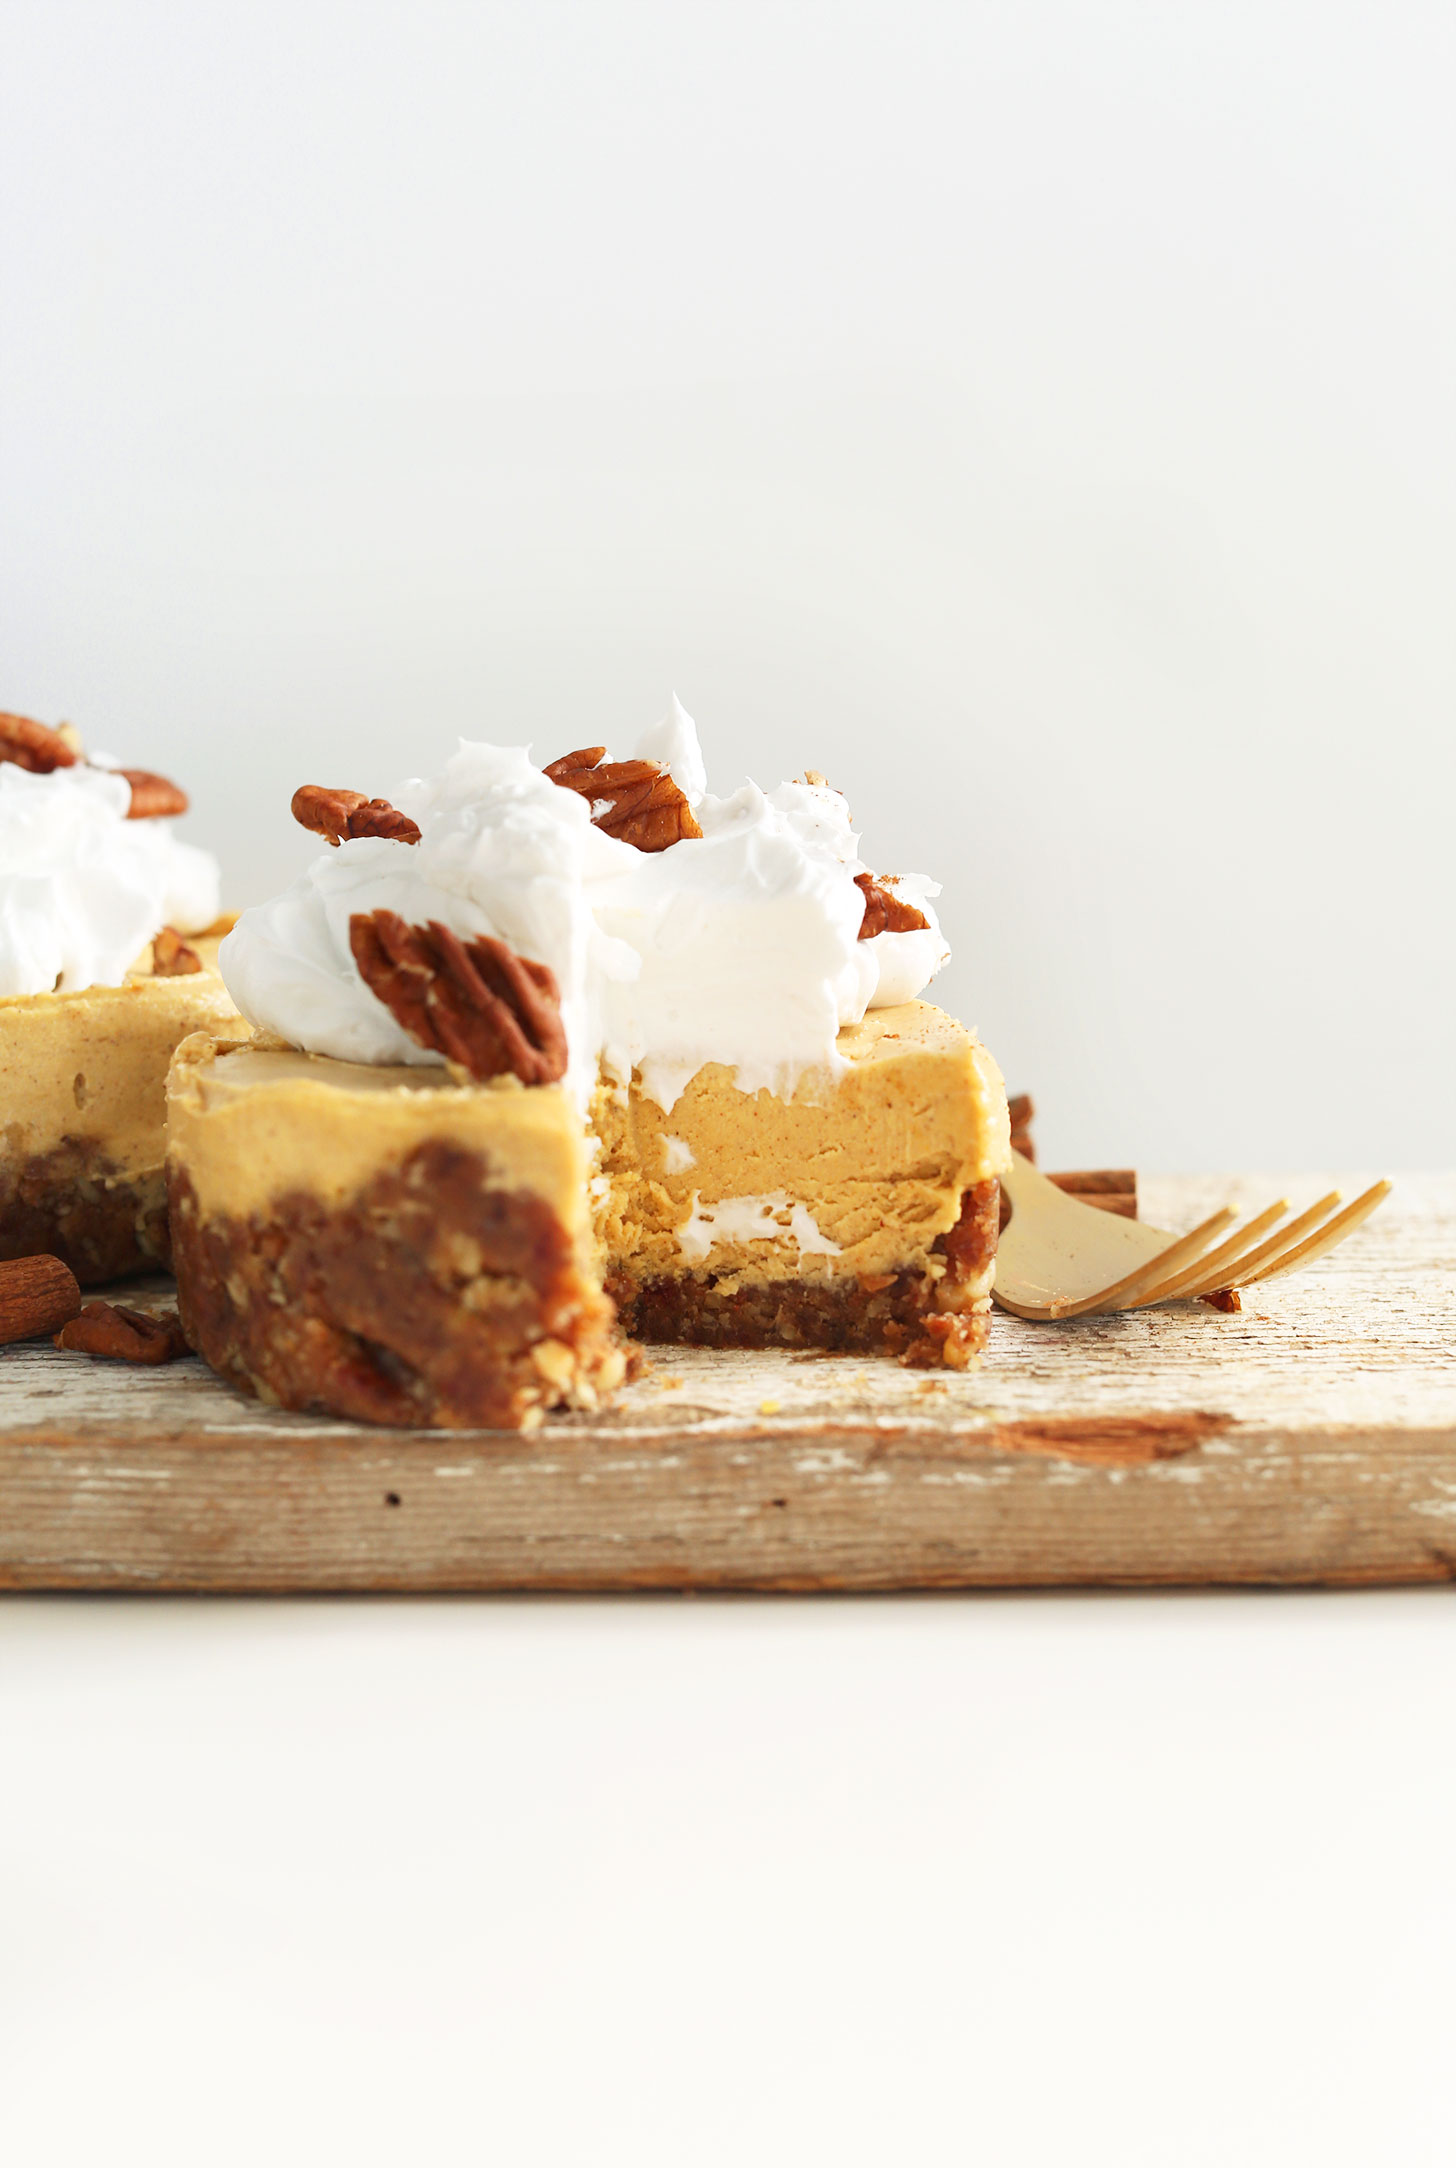 AMAZING-Creamy-Vegan-Pumpkin-Cheesecakes-1-Bowl-10-ingredients-PERFECT-for-fall-pumpkin-cheesecake-vegan-dessert-recipe-minimalistbaker.jpg